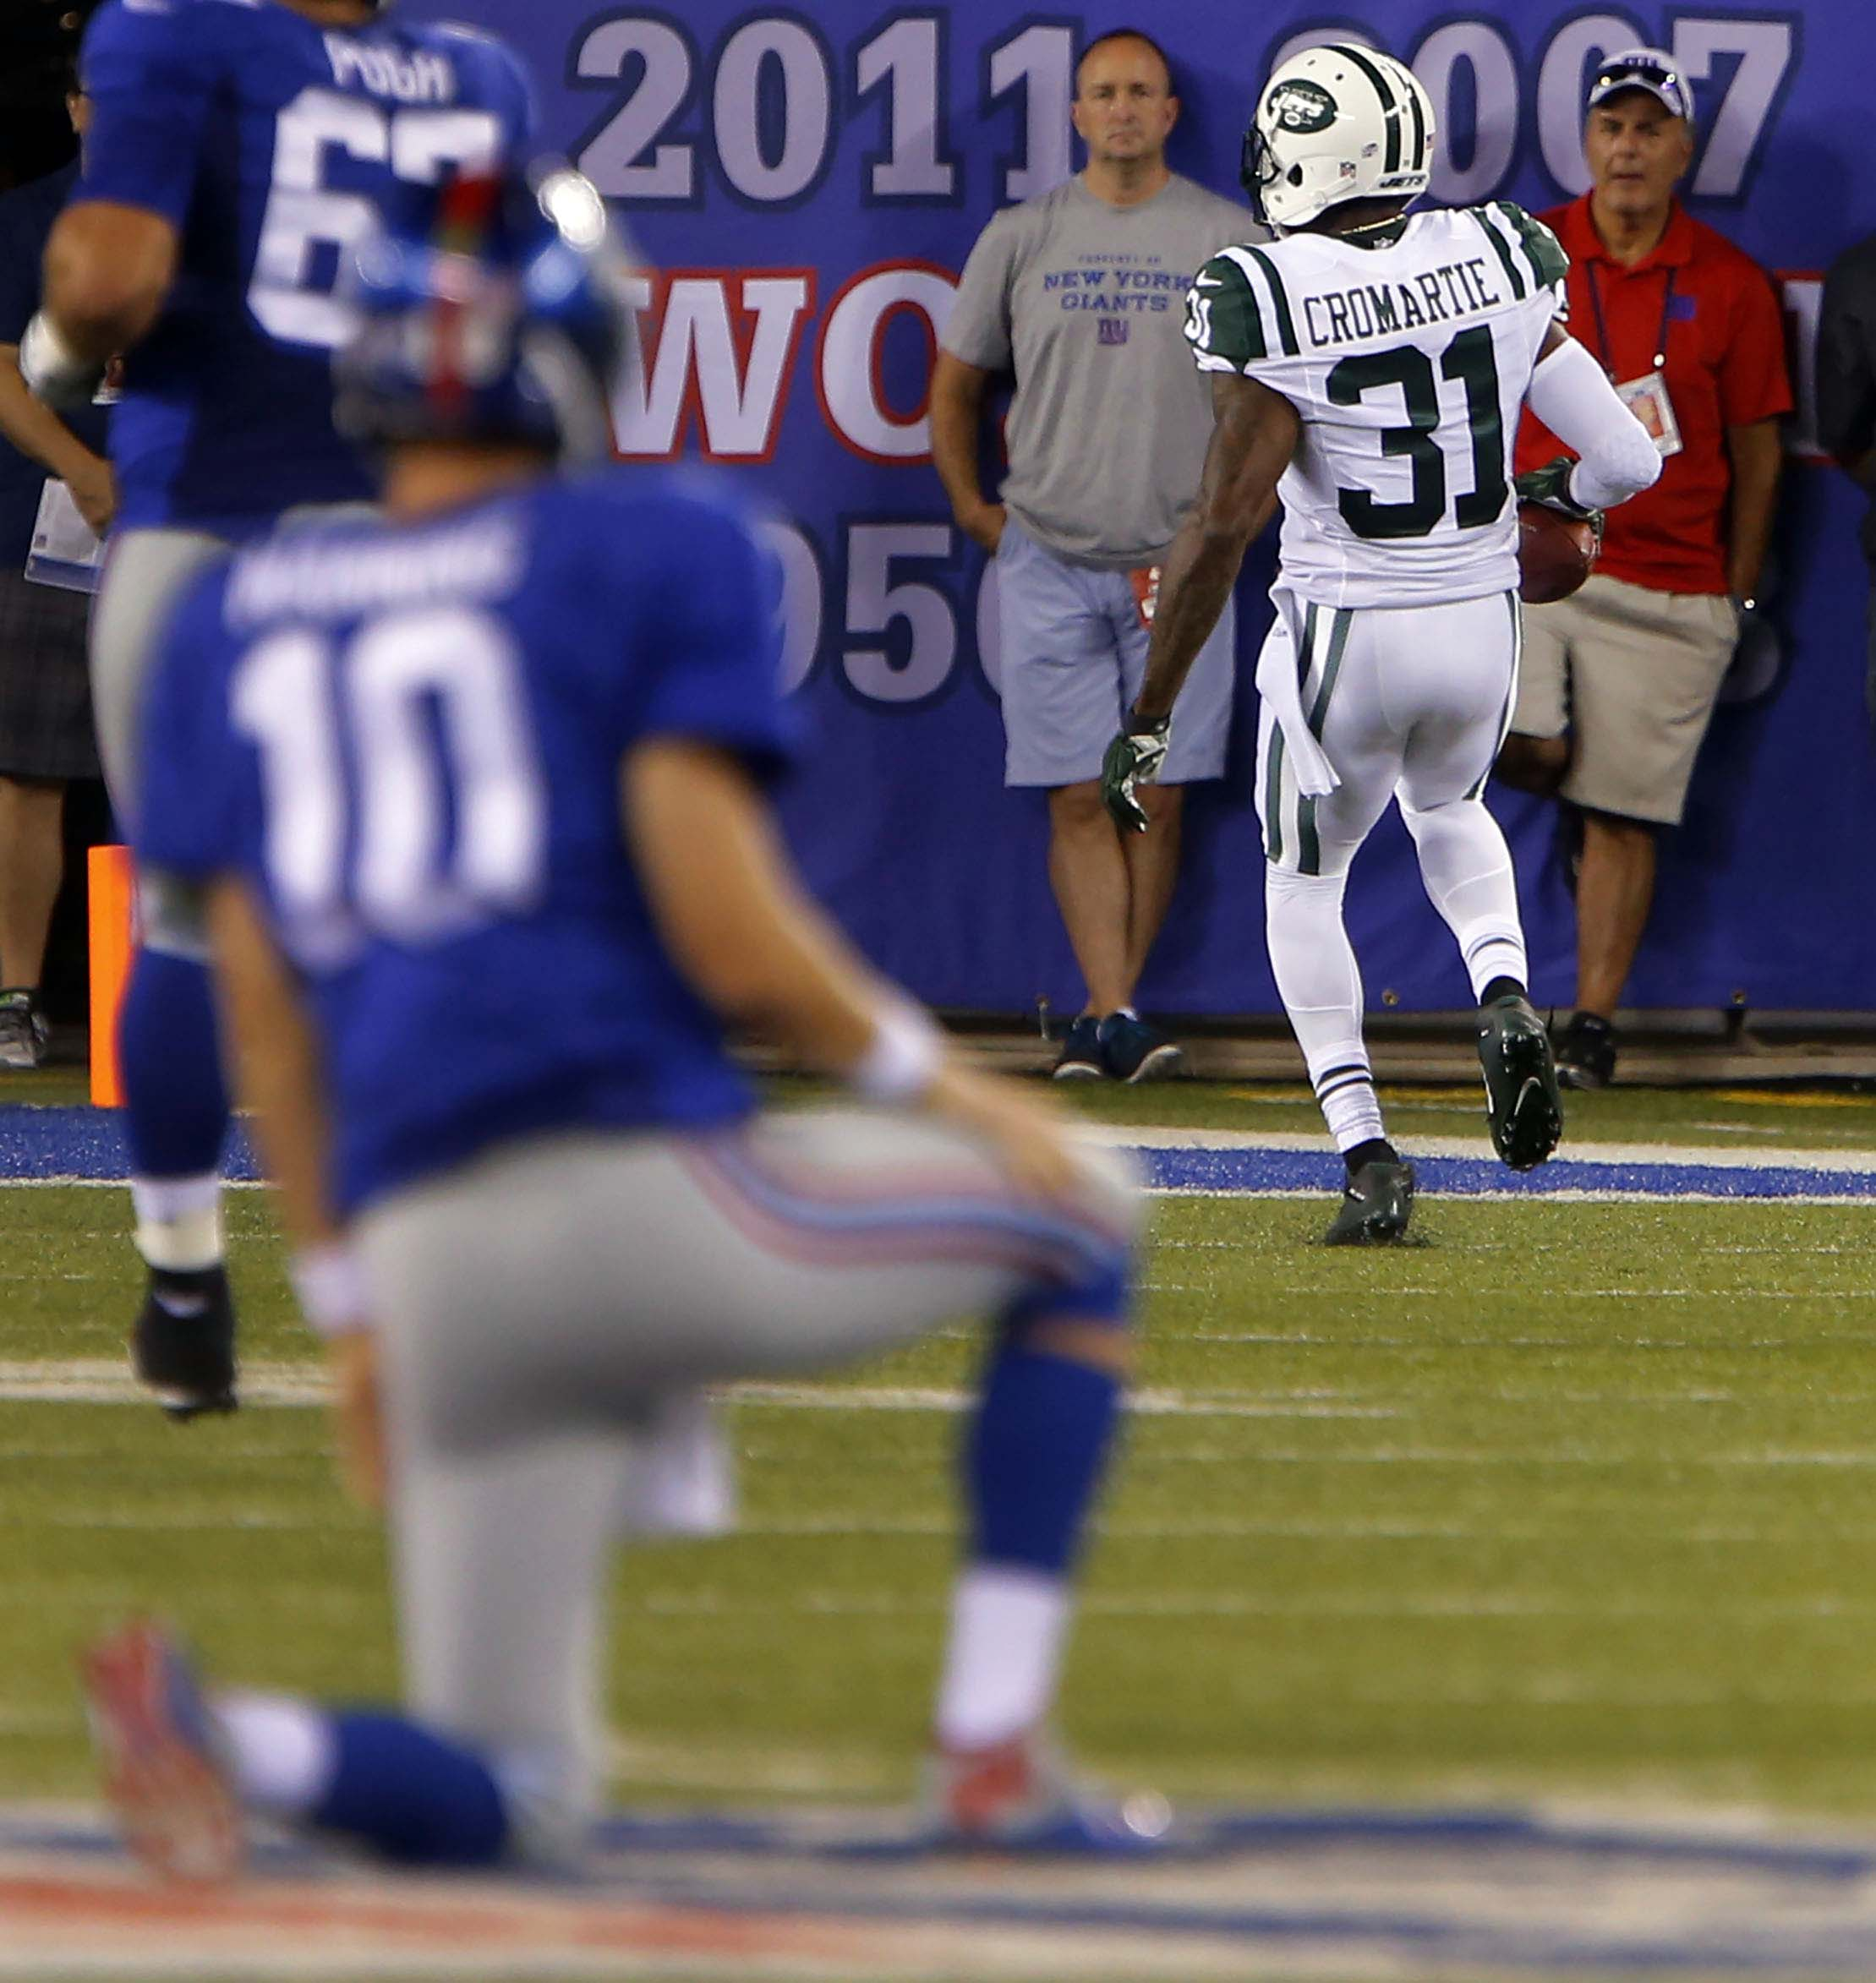 The Jets-Giants 'Snoopy Bowl' reveals teams on divergent paths